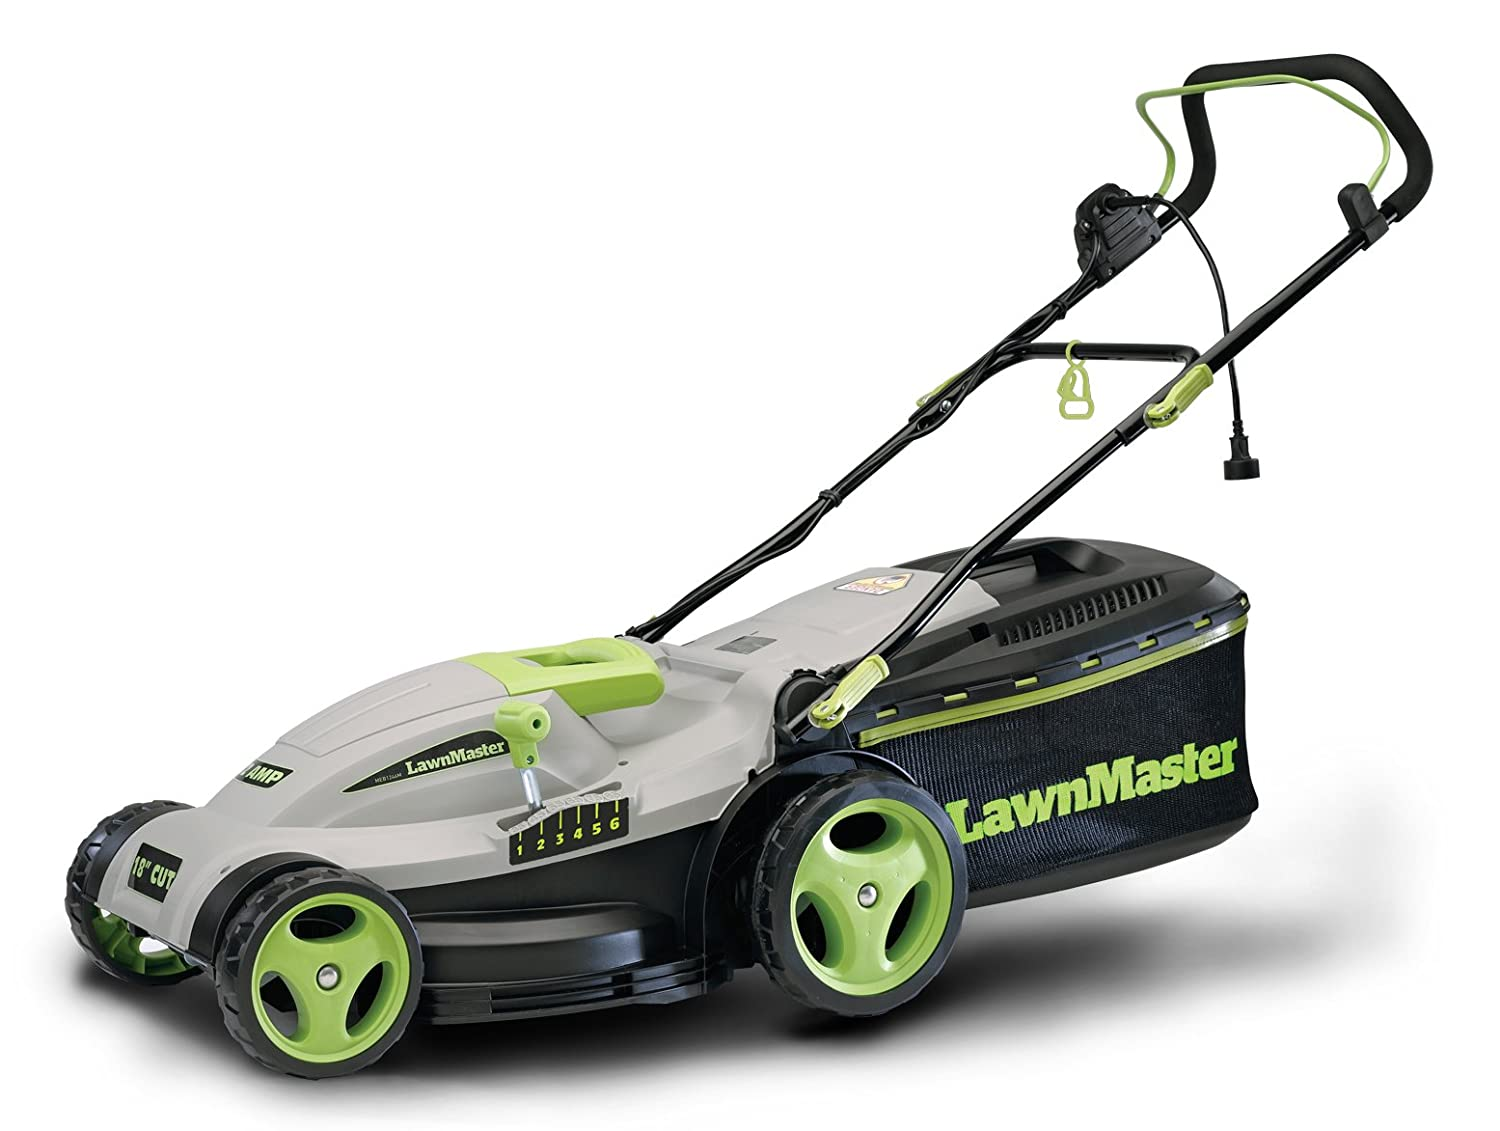 Top 10 electric lawn mowers